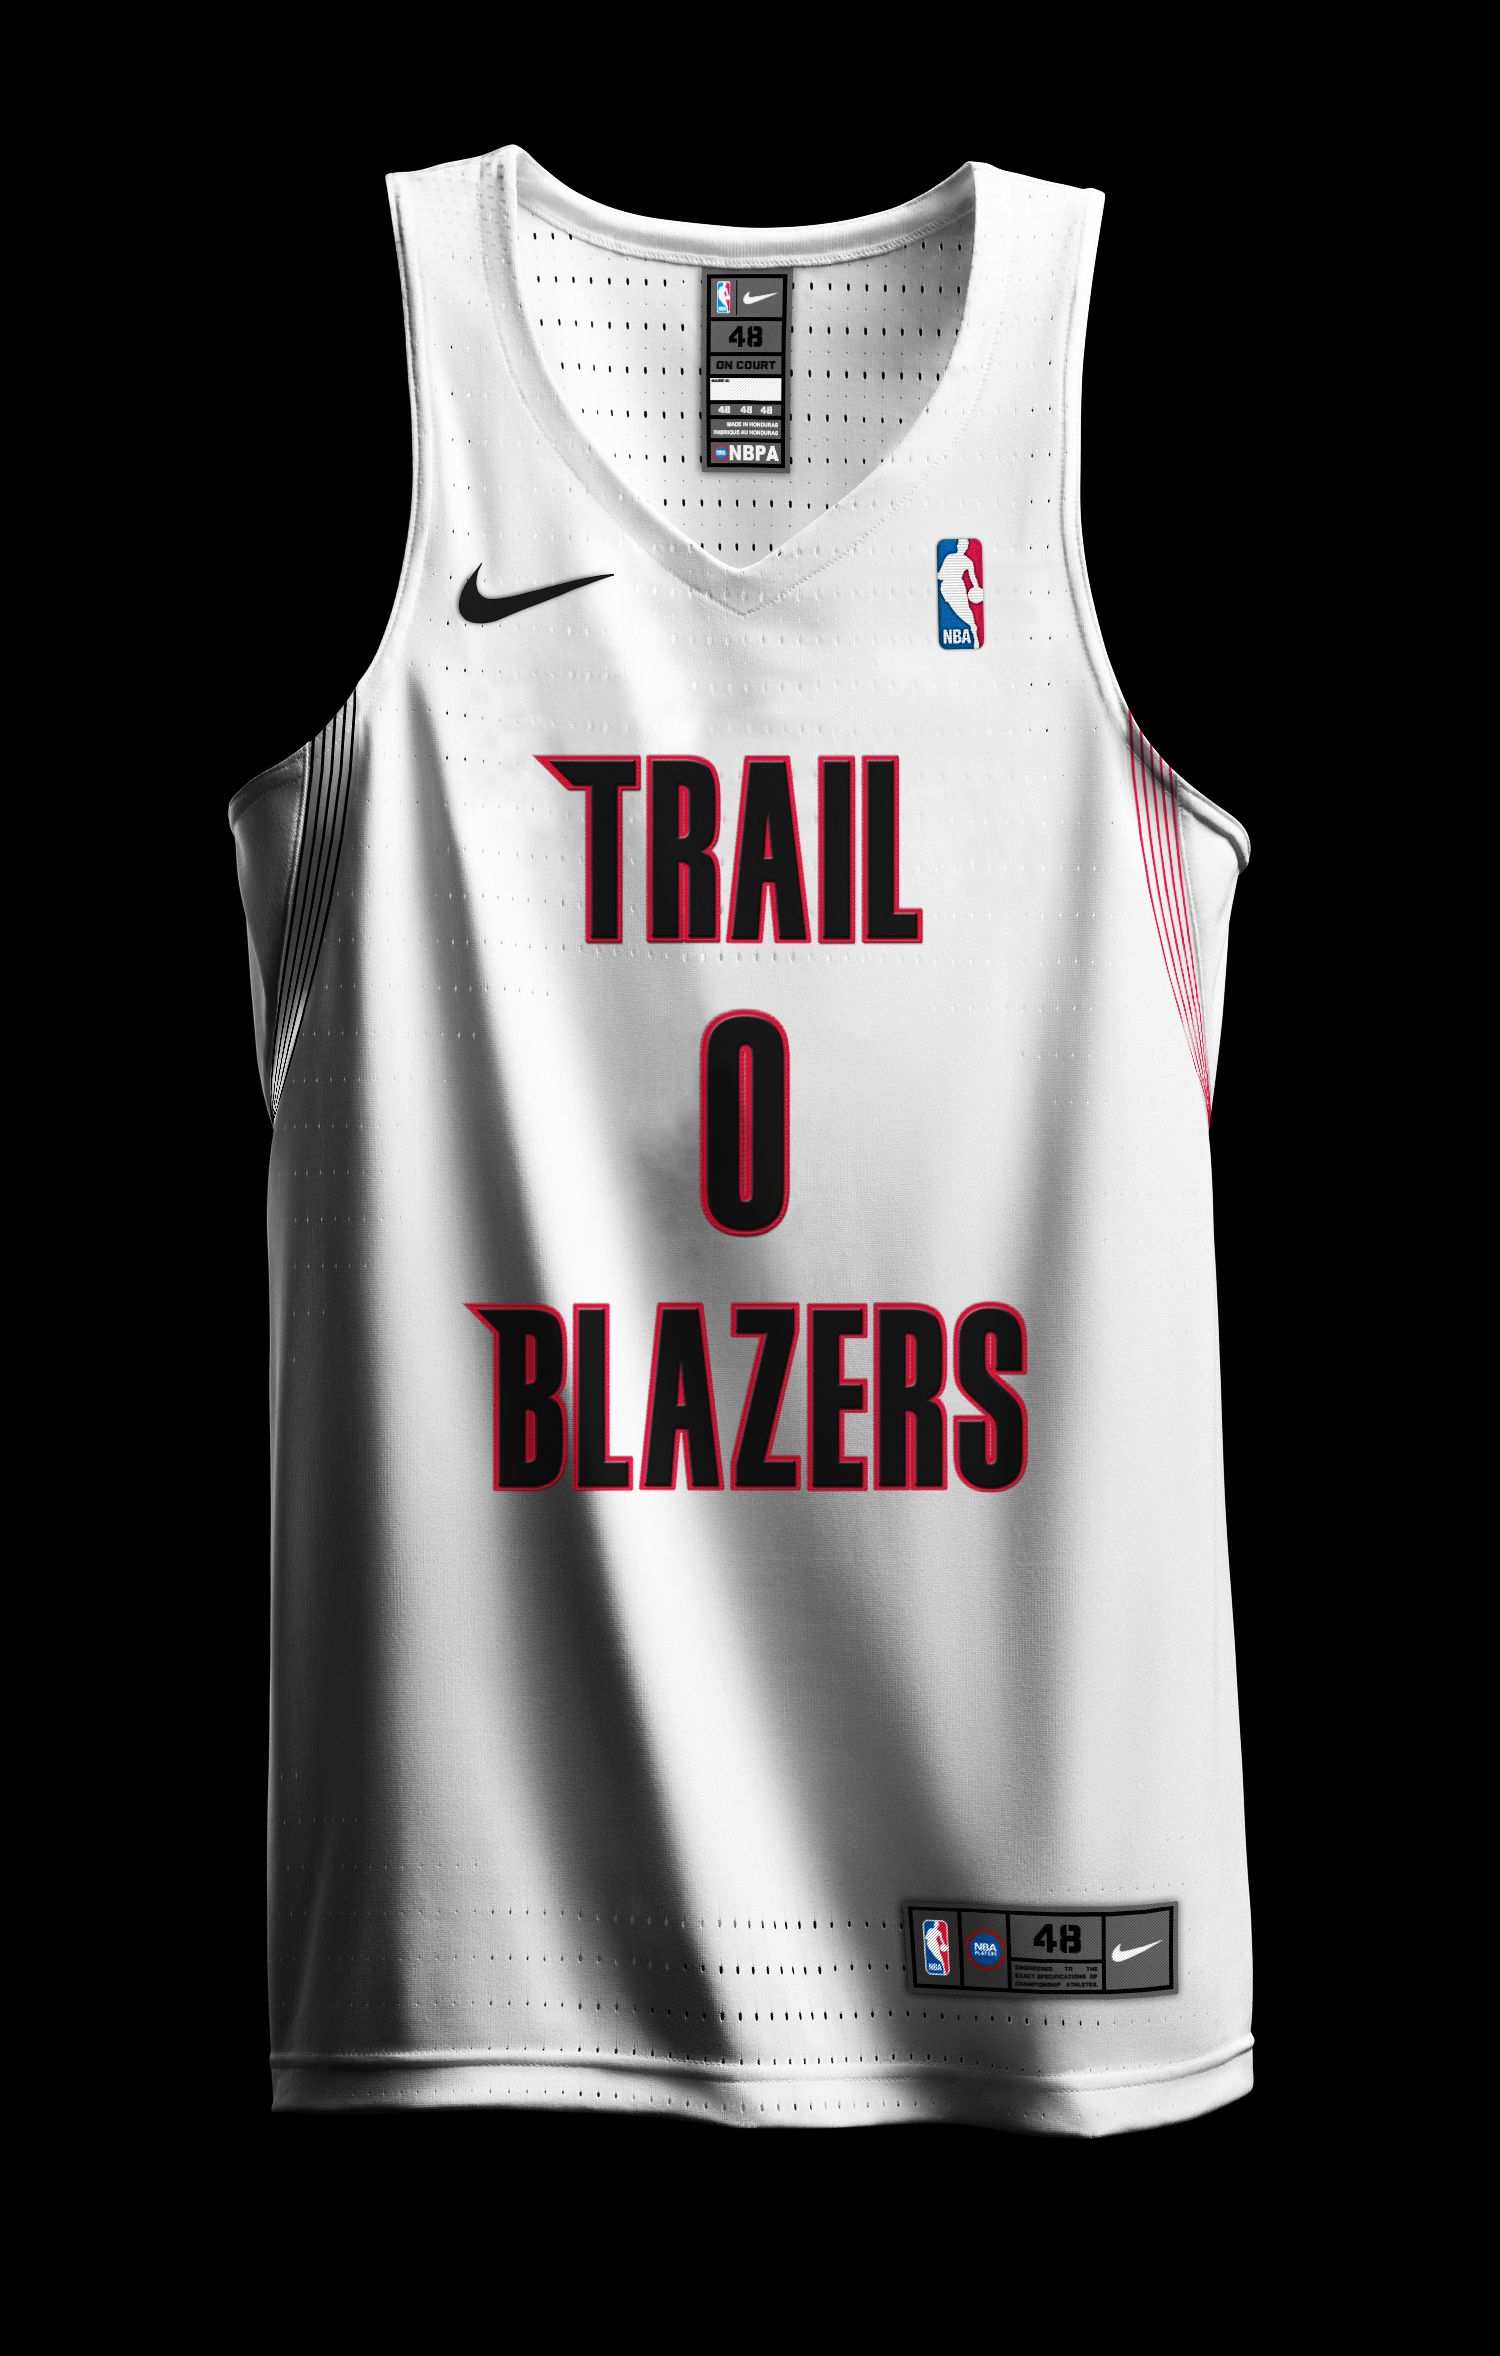 Pin by nick on Jersey Ideas Basketball uniforms design